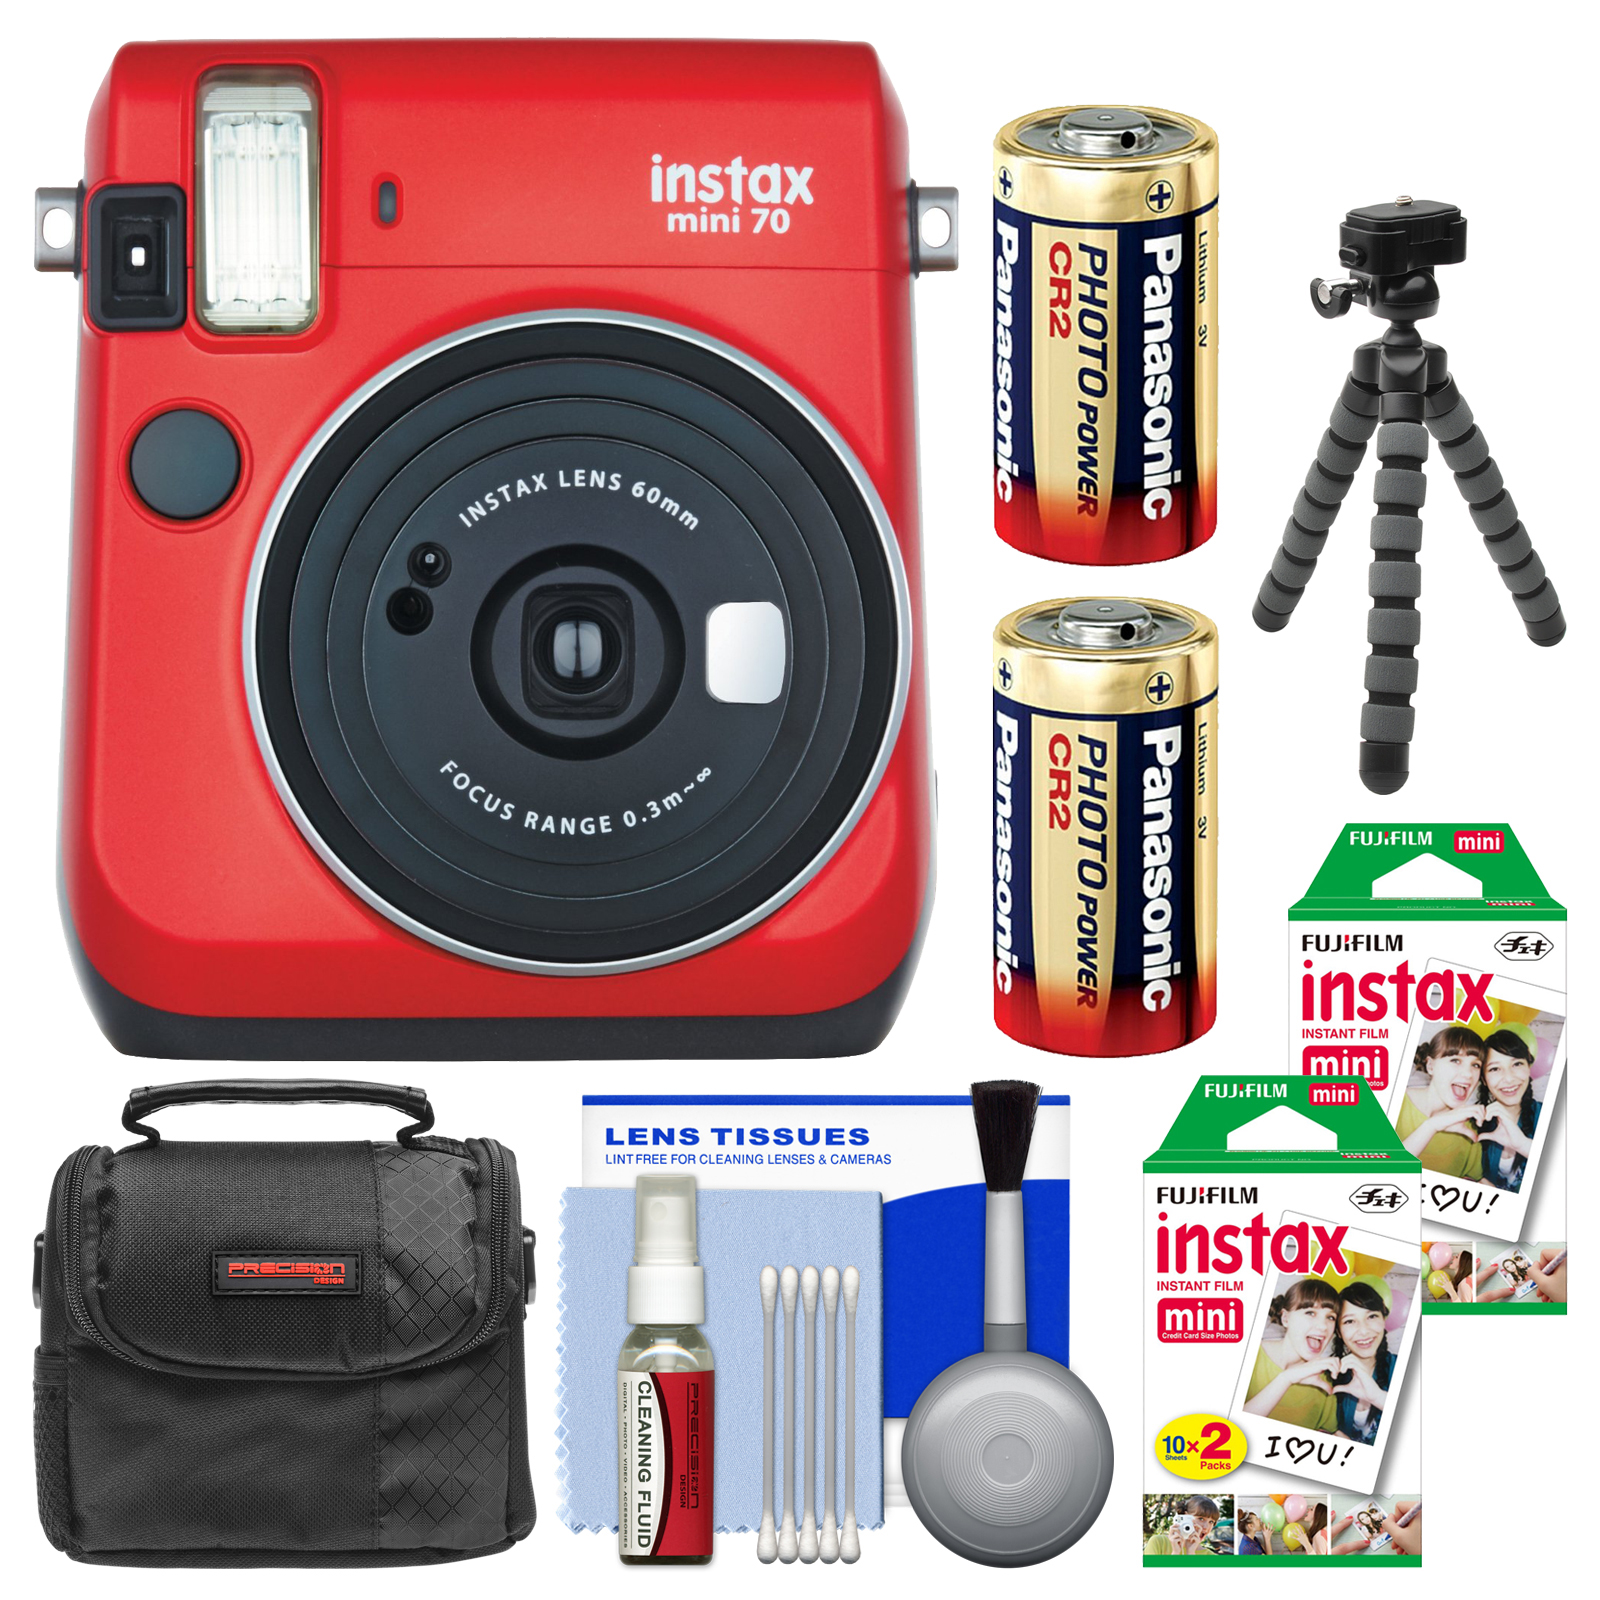 FujiFilm Instax Mini 70 Instant Film Camera (Passion Red) with 40 Prints + Case + Batteries + Flex Tripod +... by Fujifilm